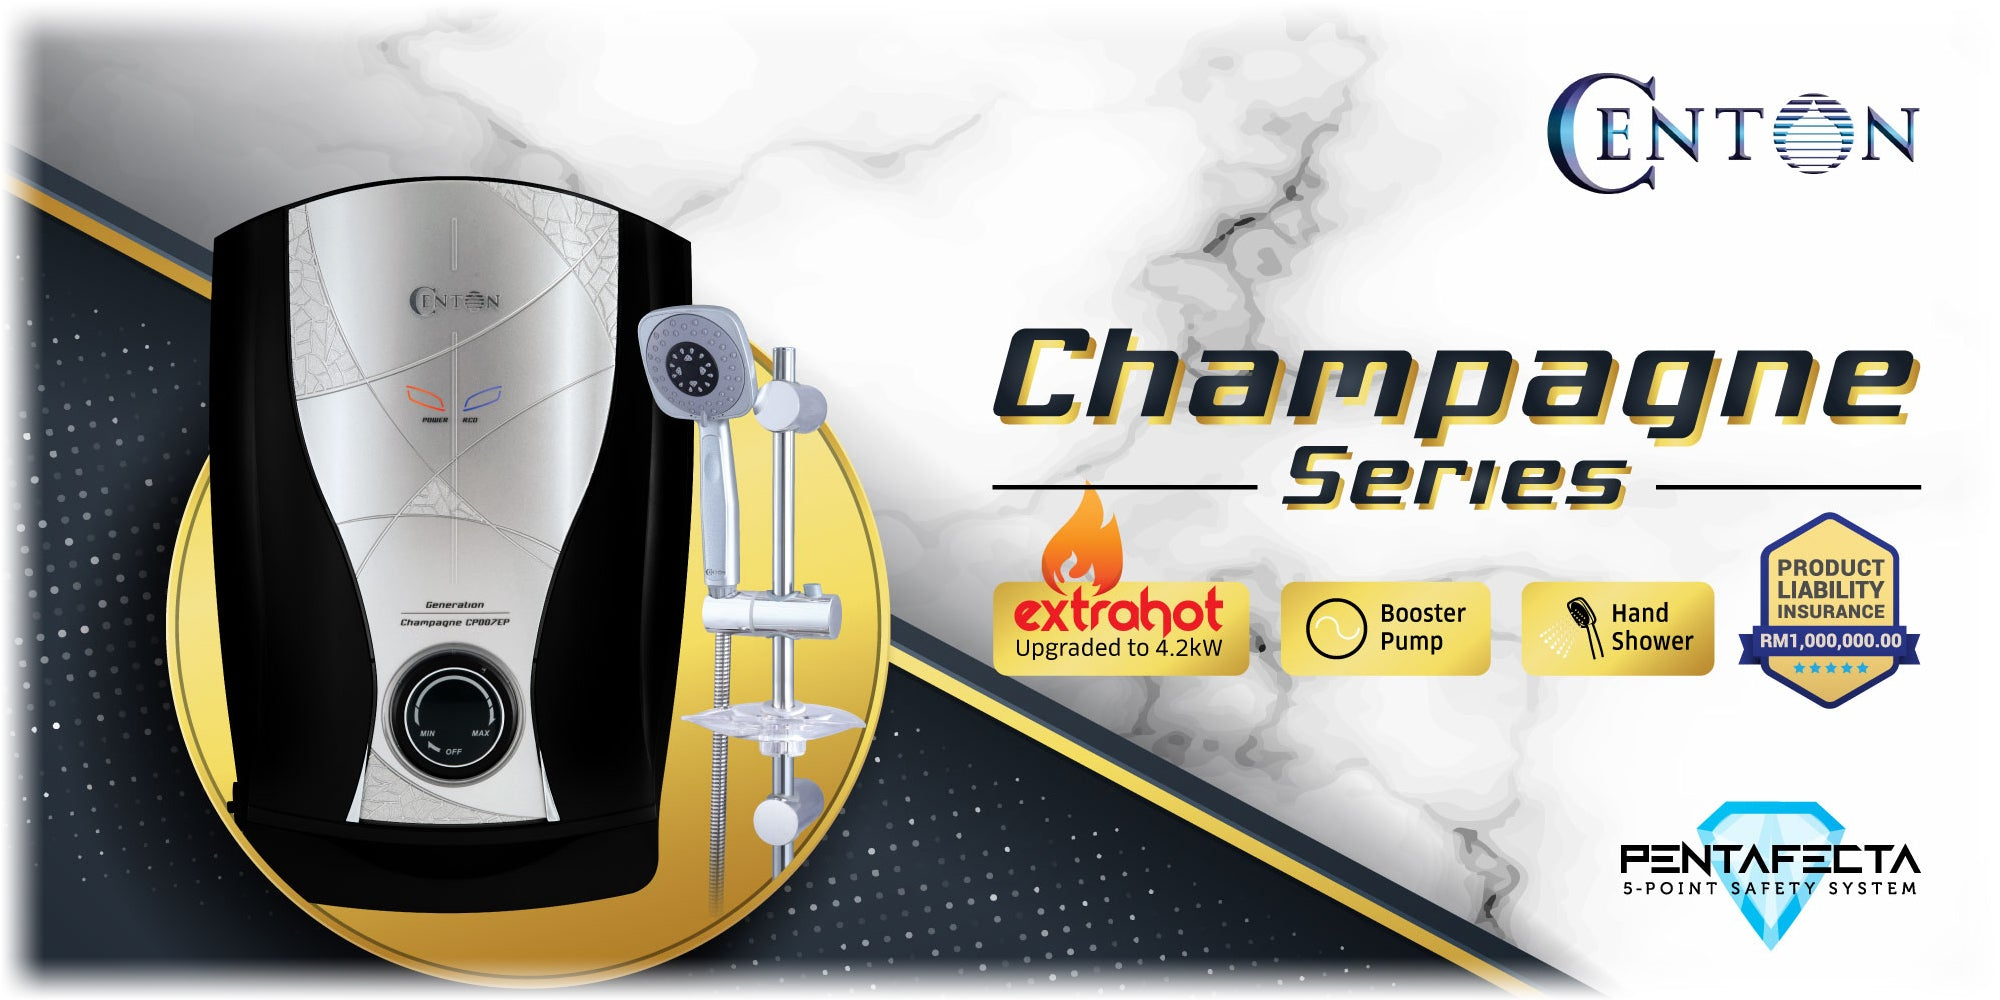 CENTON Champagne Extra Hot Instant Water Heater with AC Booster Pump